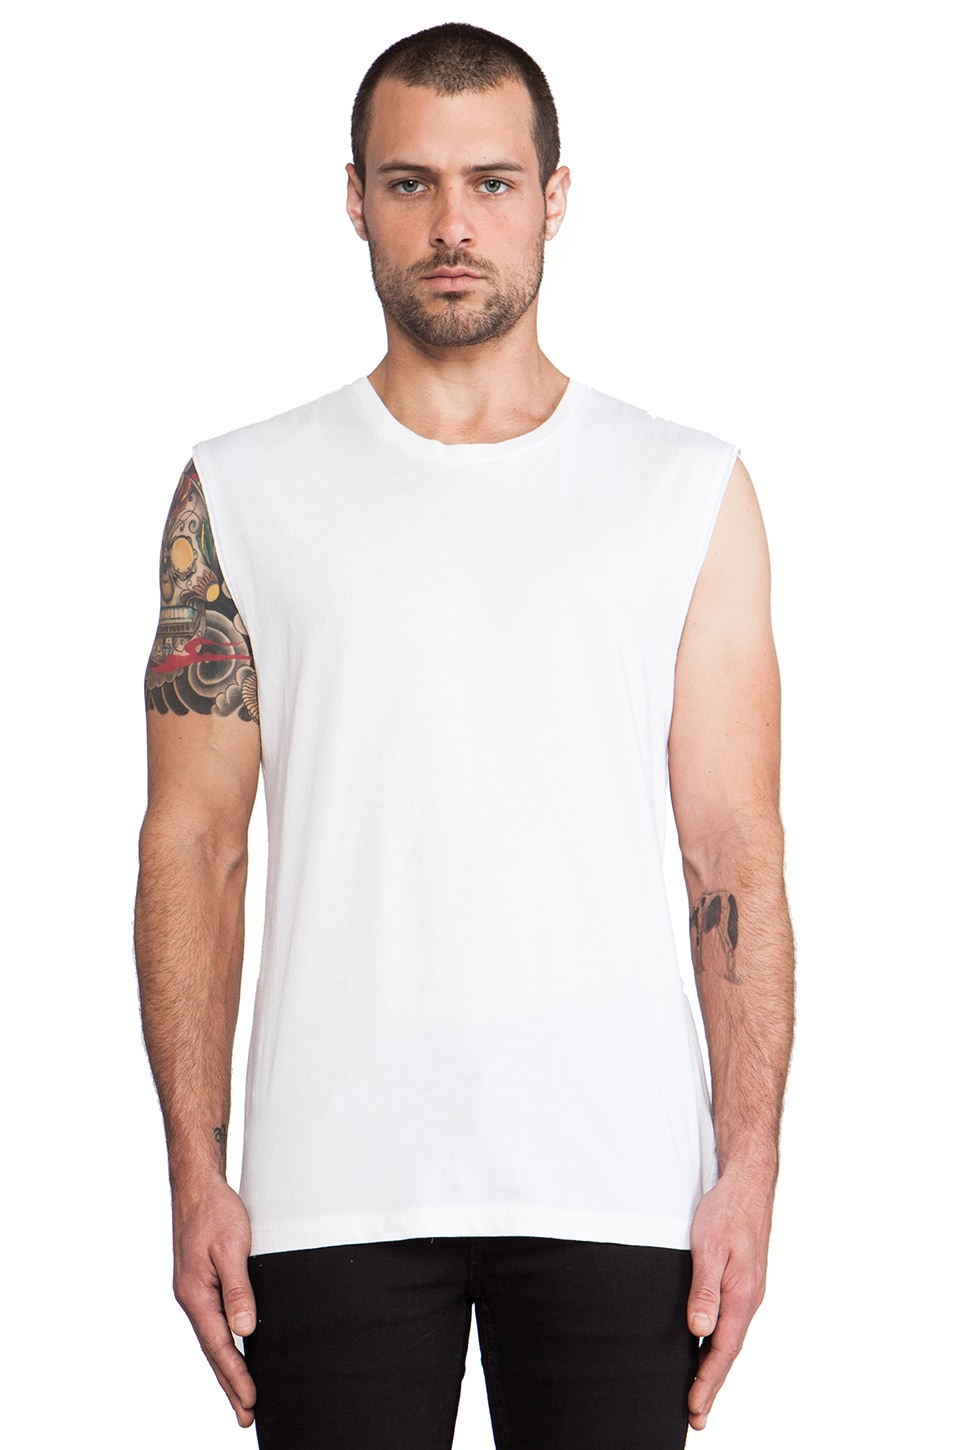 BLK DNM T-Shirt 40 in White